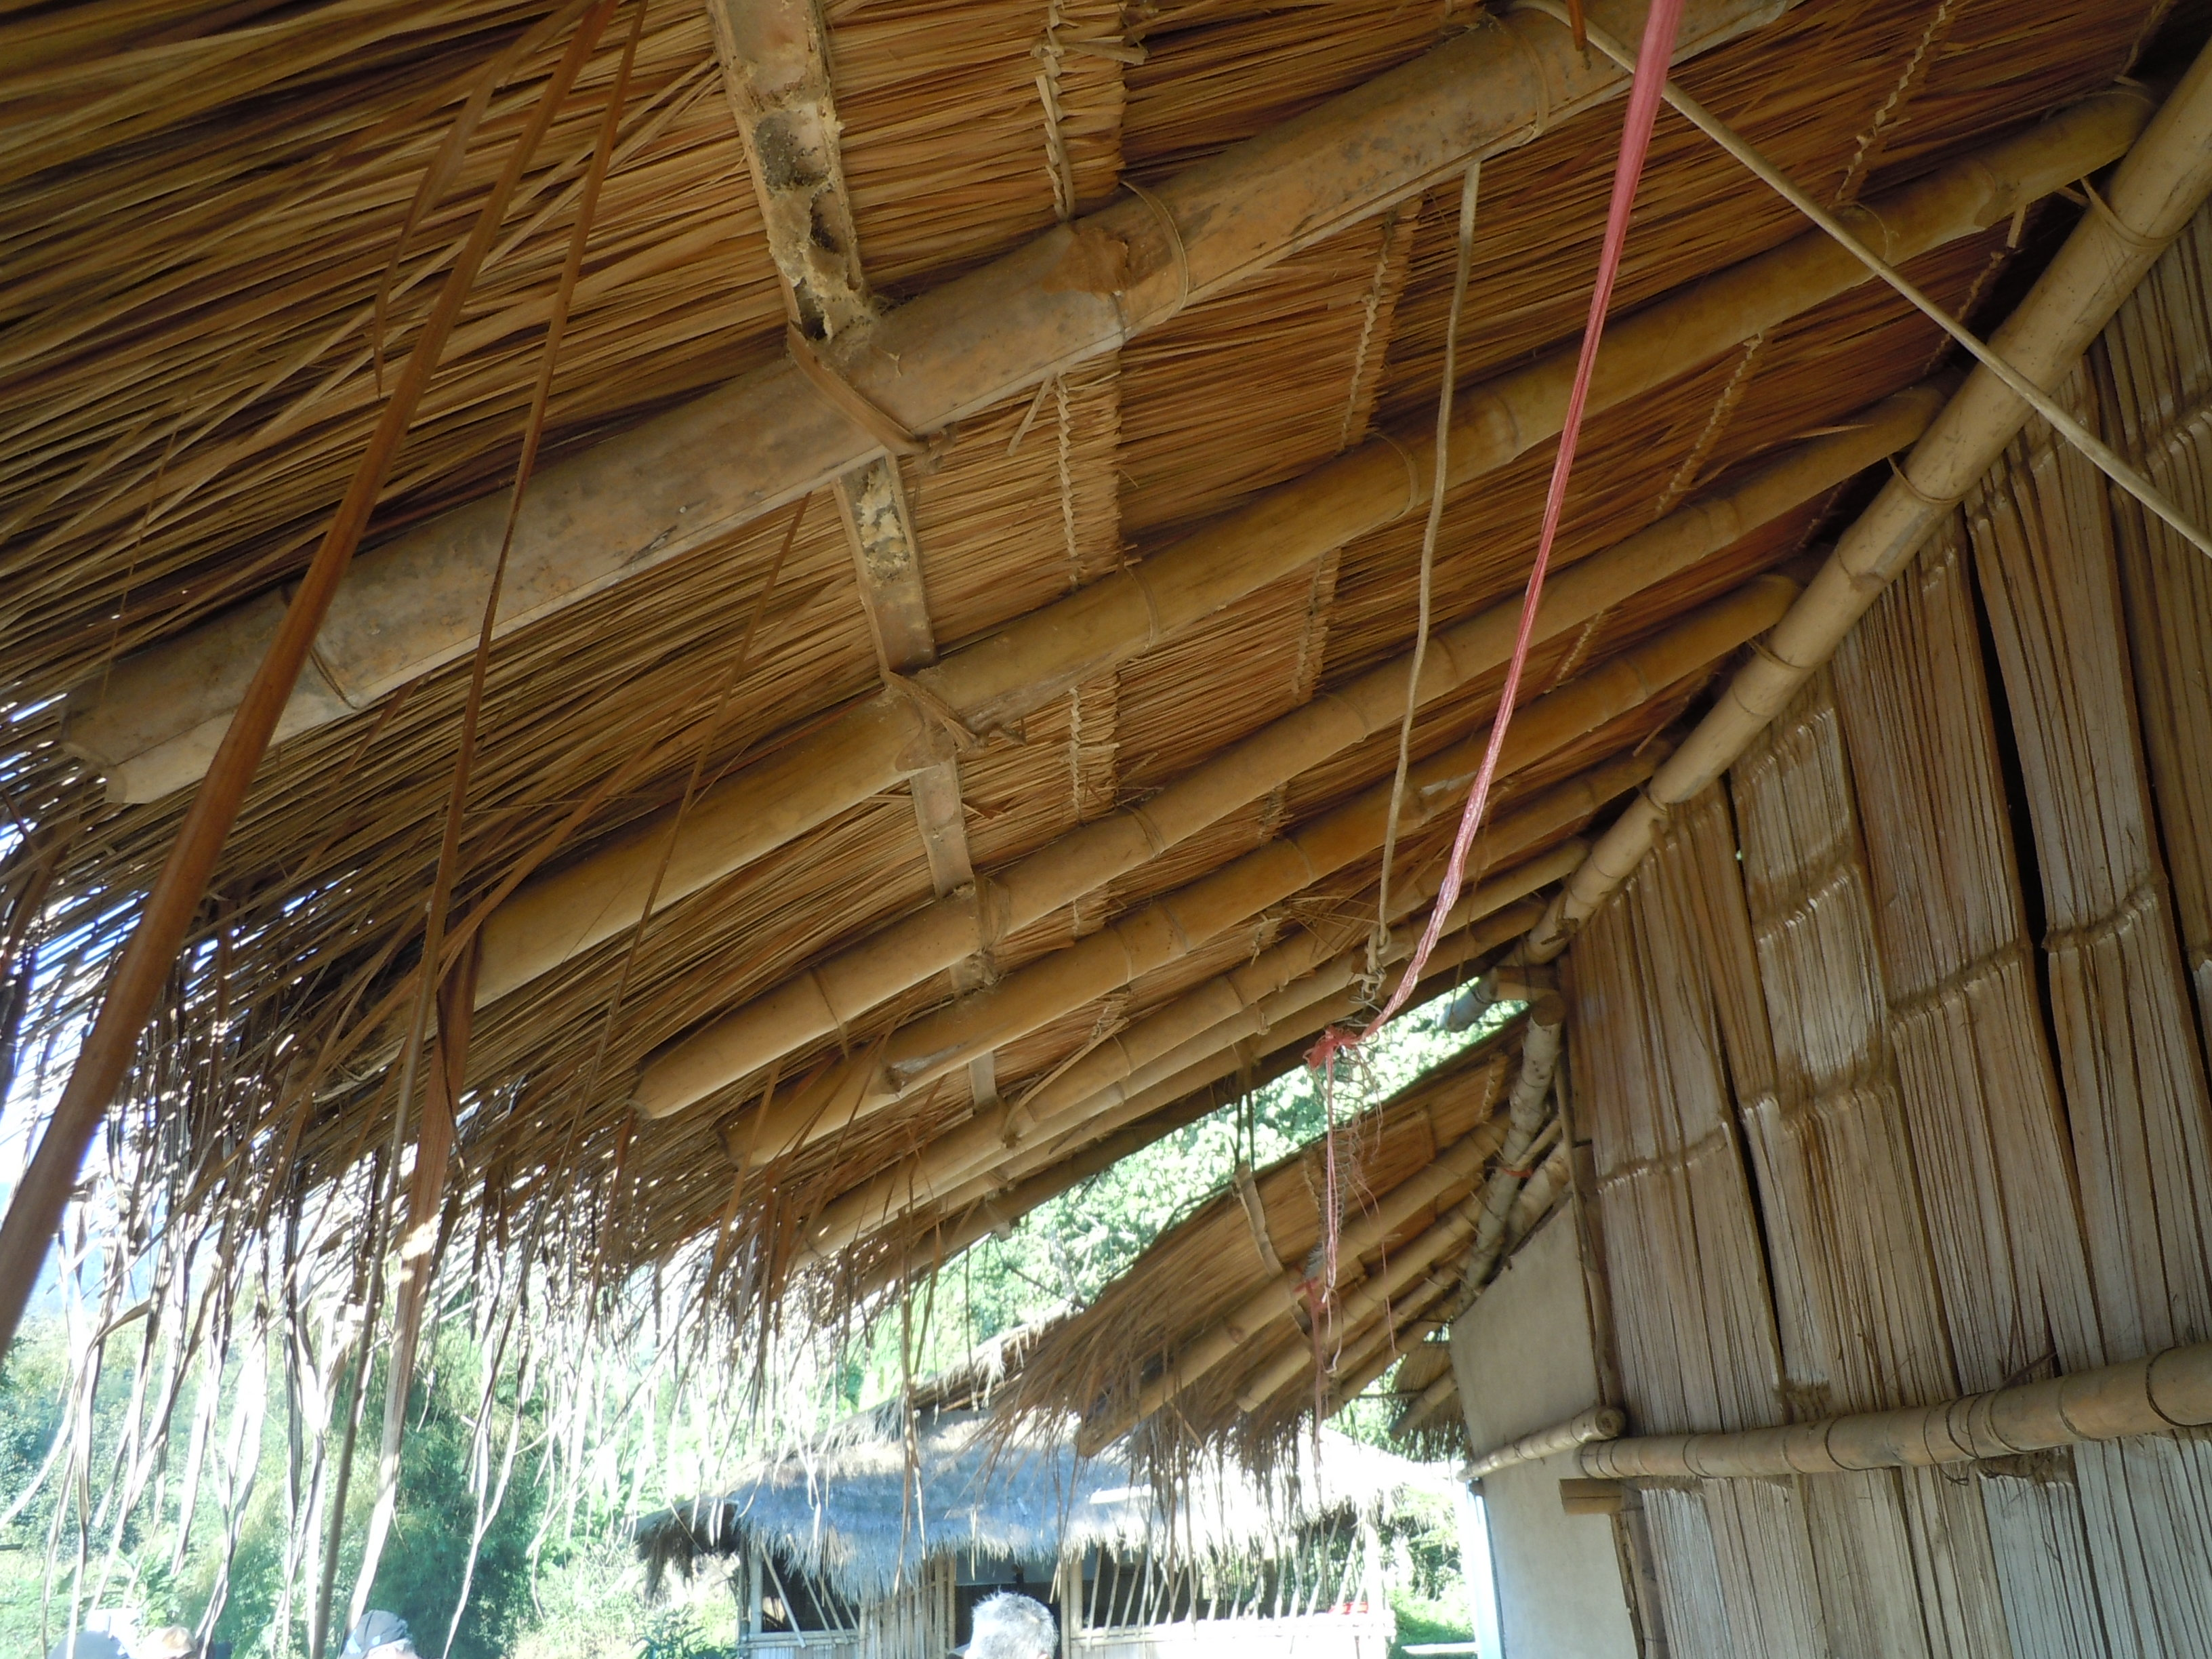 Bamboo And Thatch Roof Eaves Hill Village